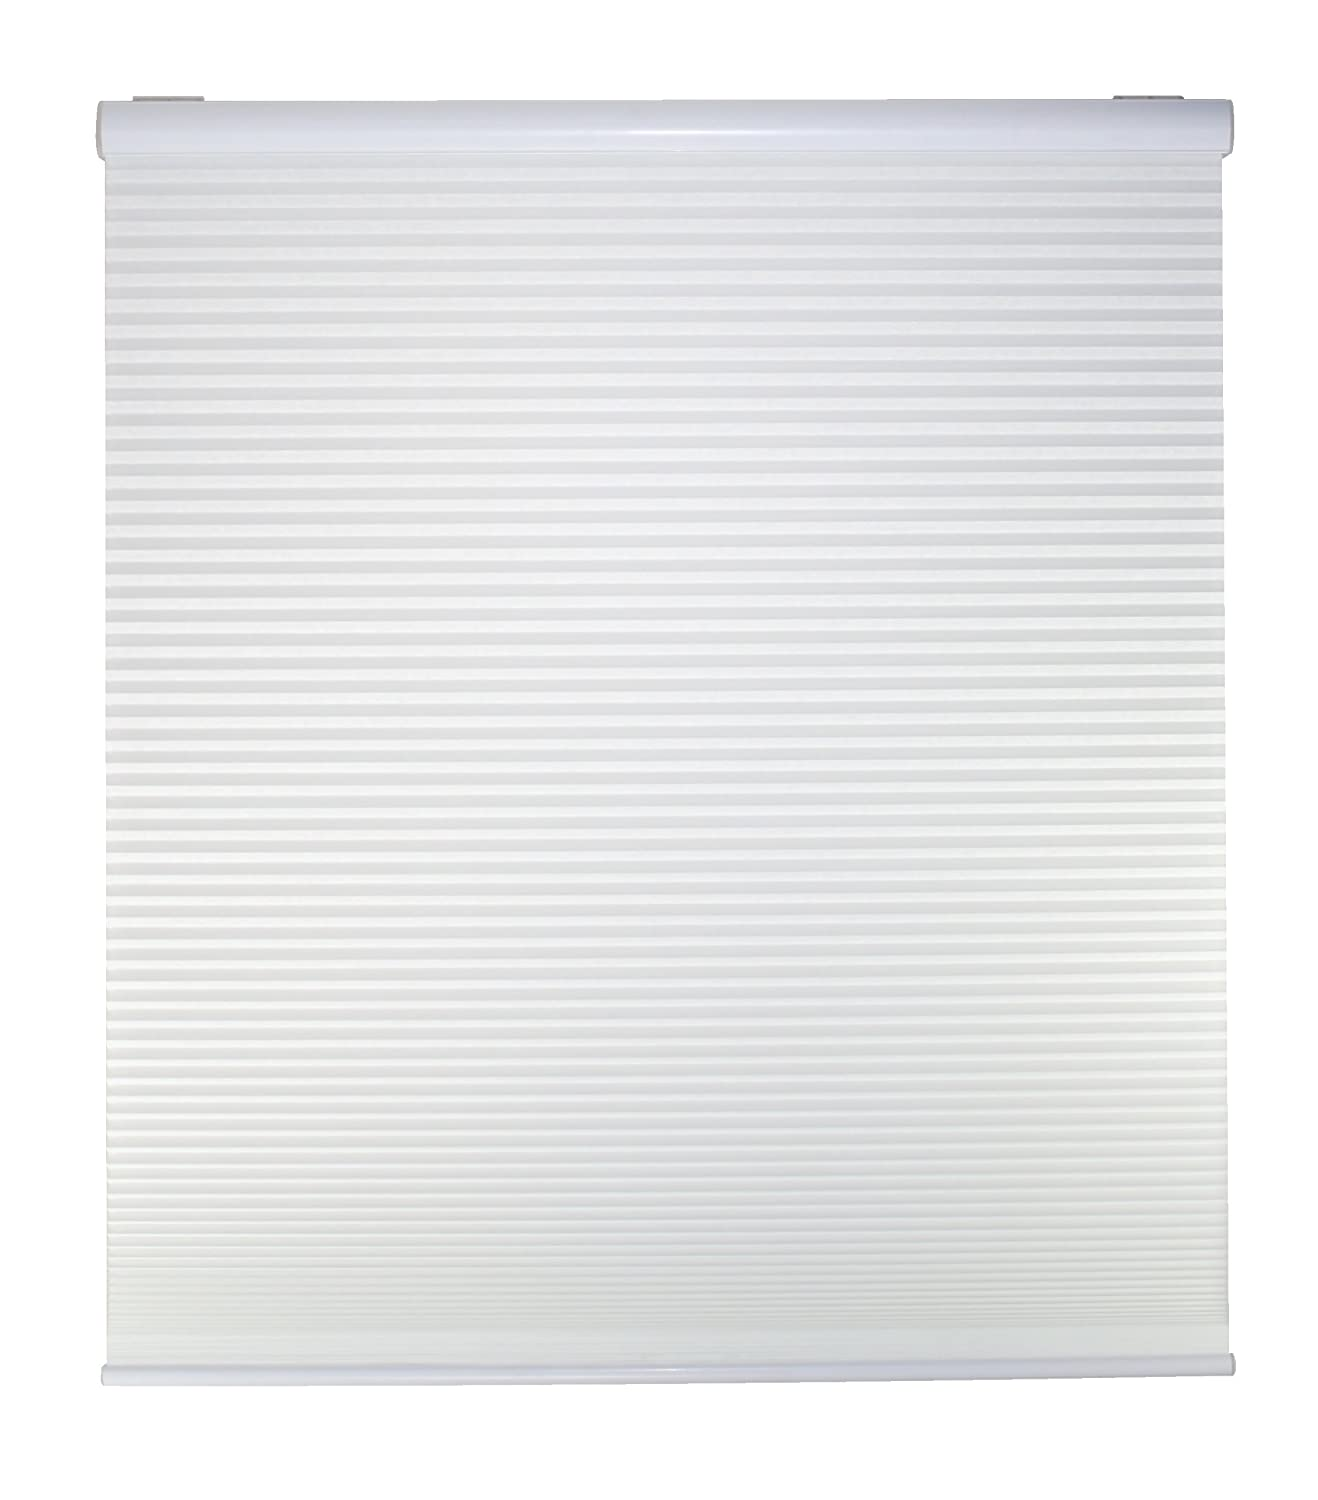 White DEZ Furnishings QCWT254640 Cordless Light Filtering Cellular Shade 25.5W x 64H Inches